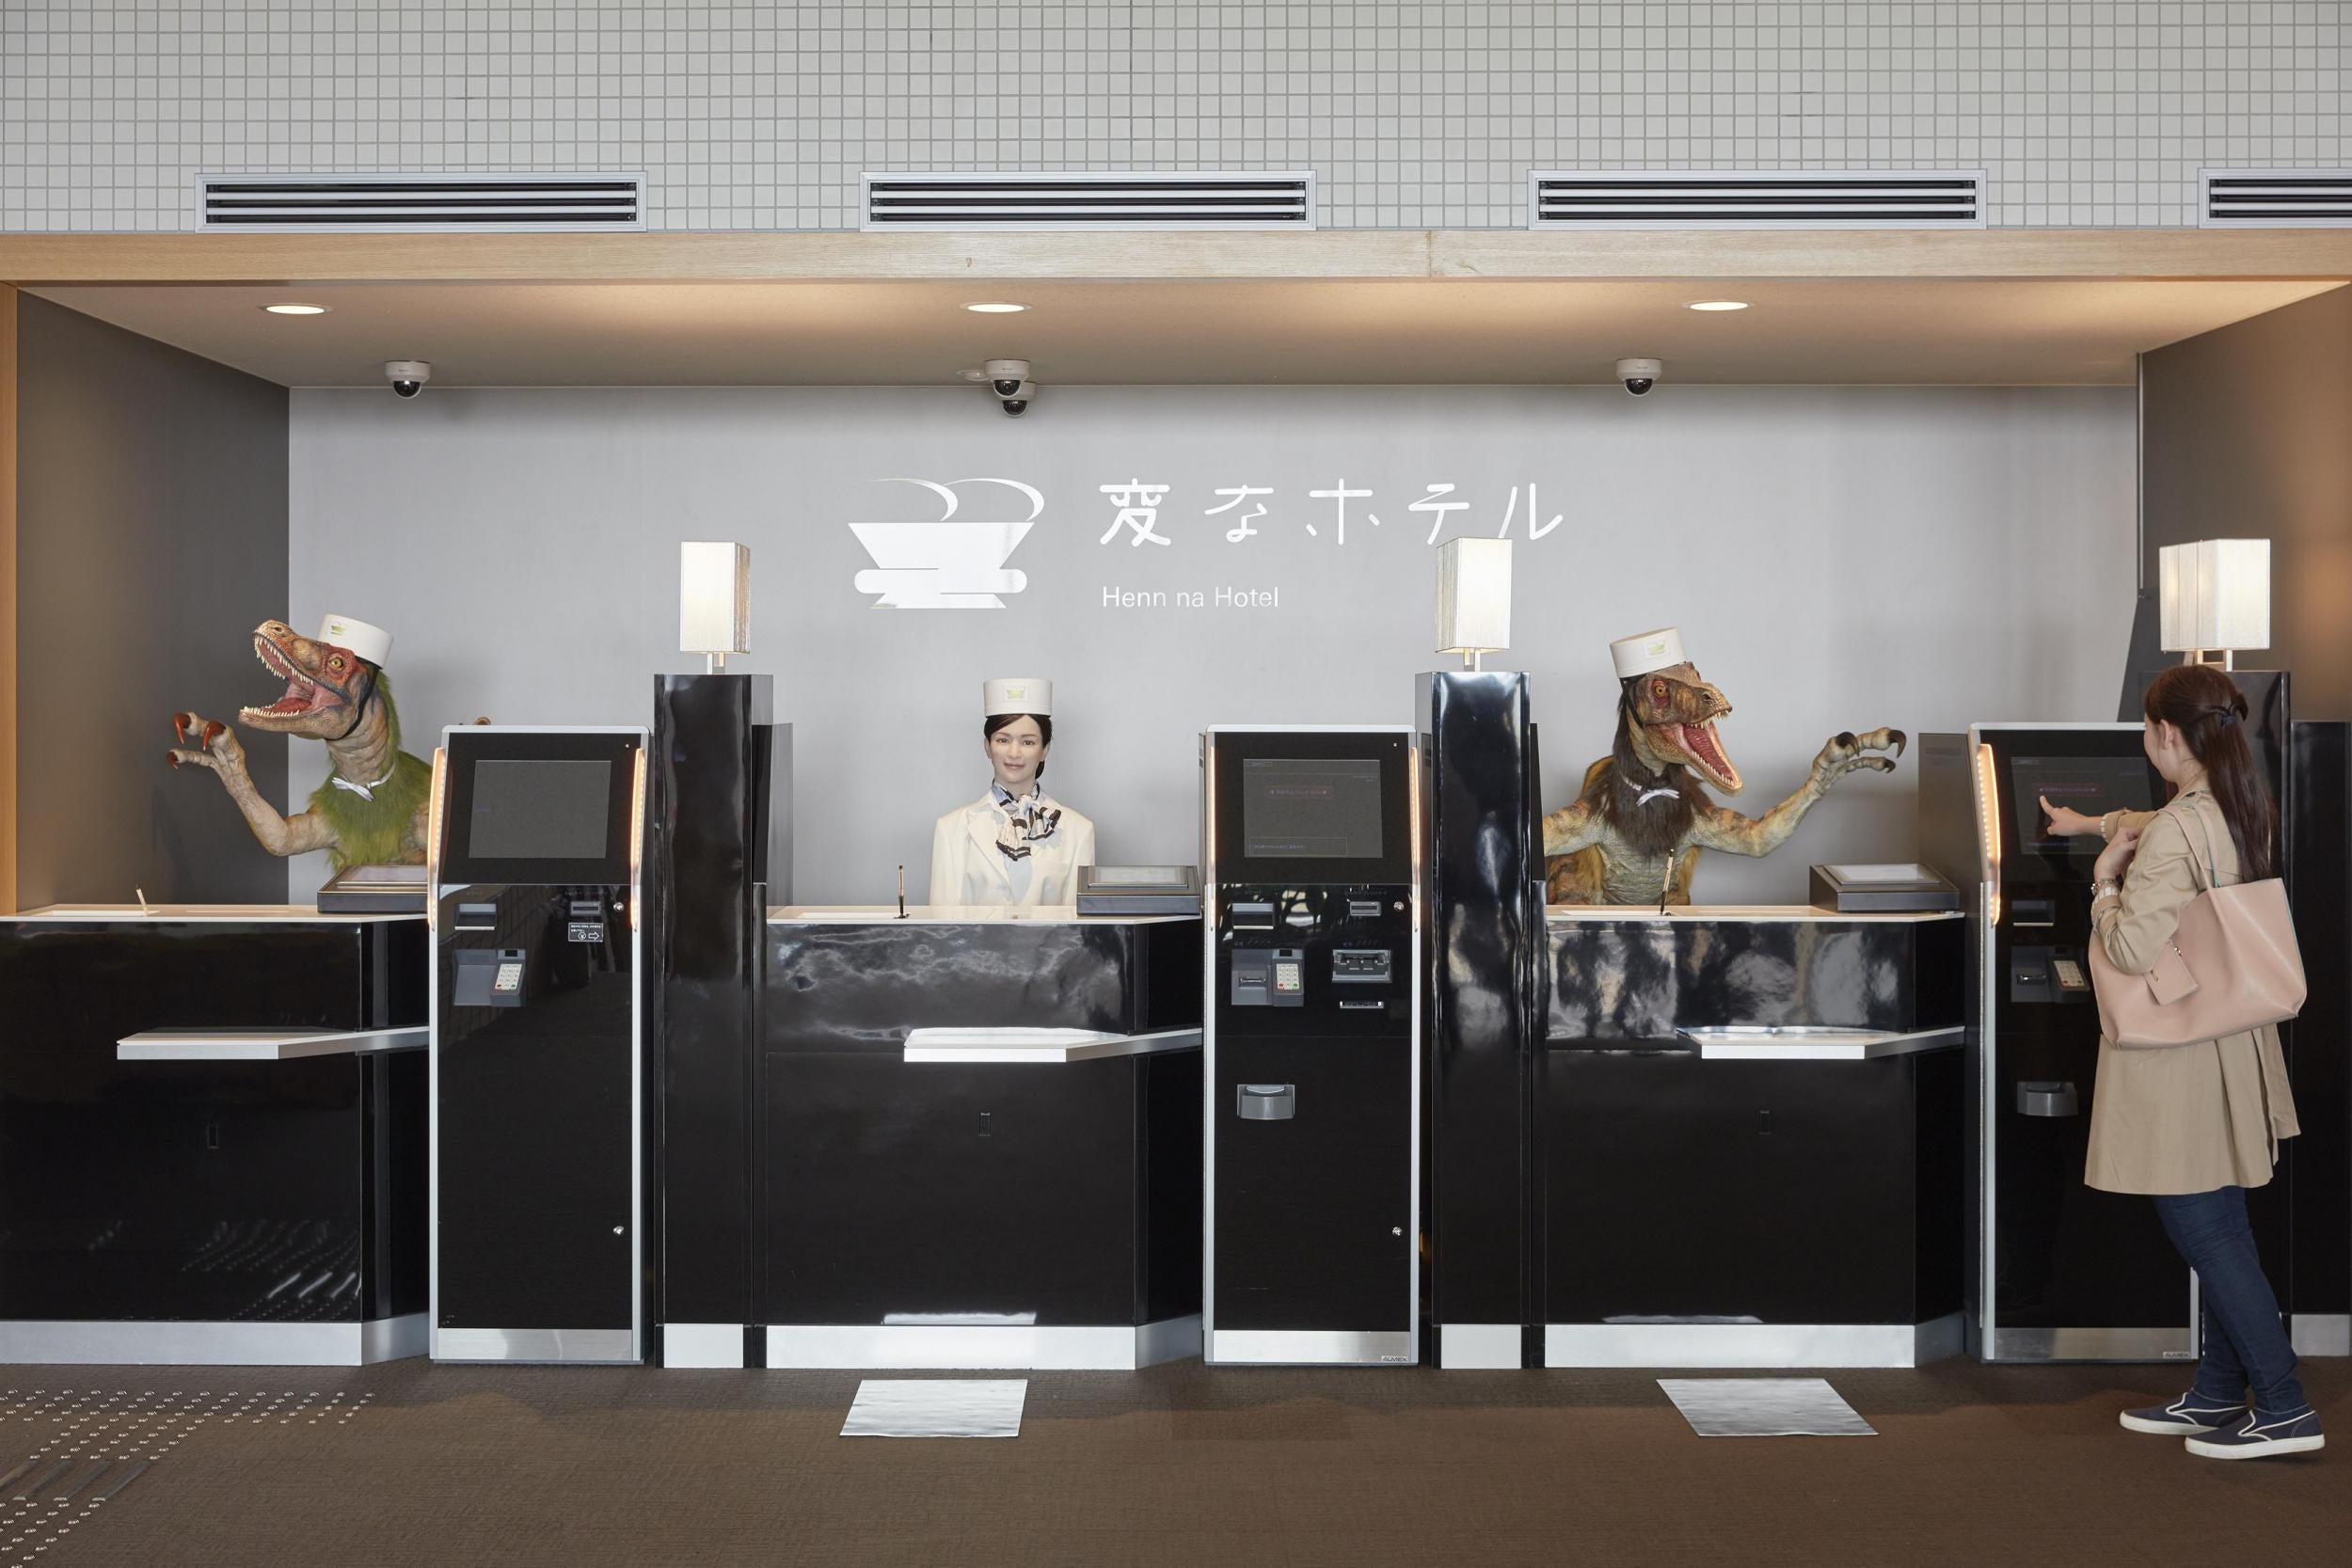 Henn-na Hotel: What it's like to stay in a Japanese hotel staffed entirely by robots